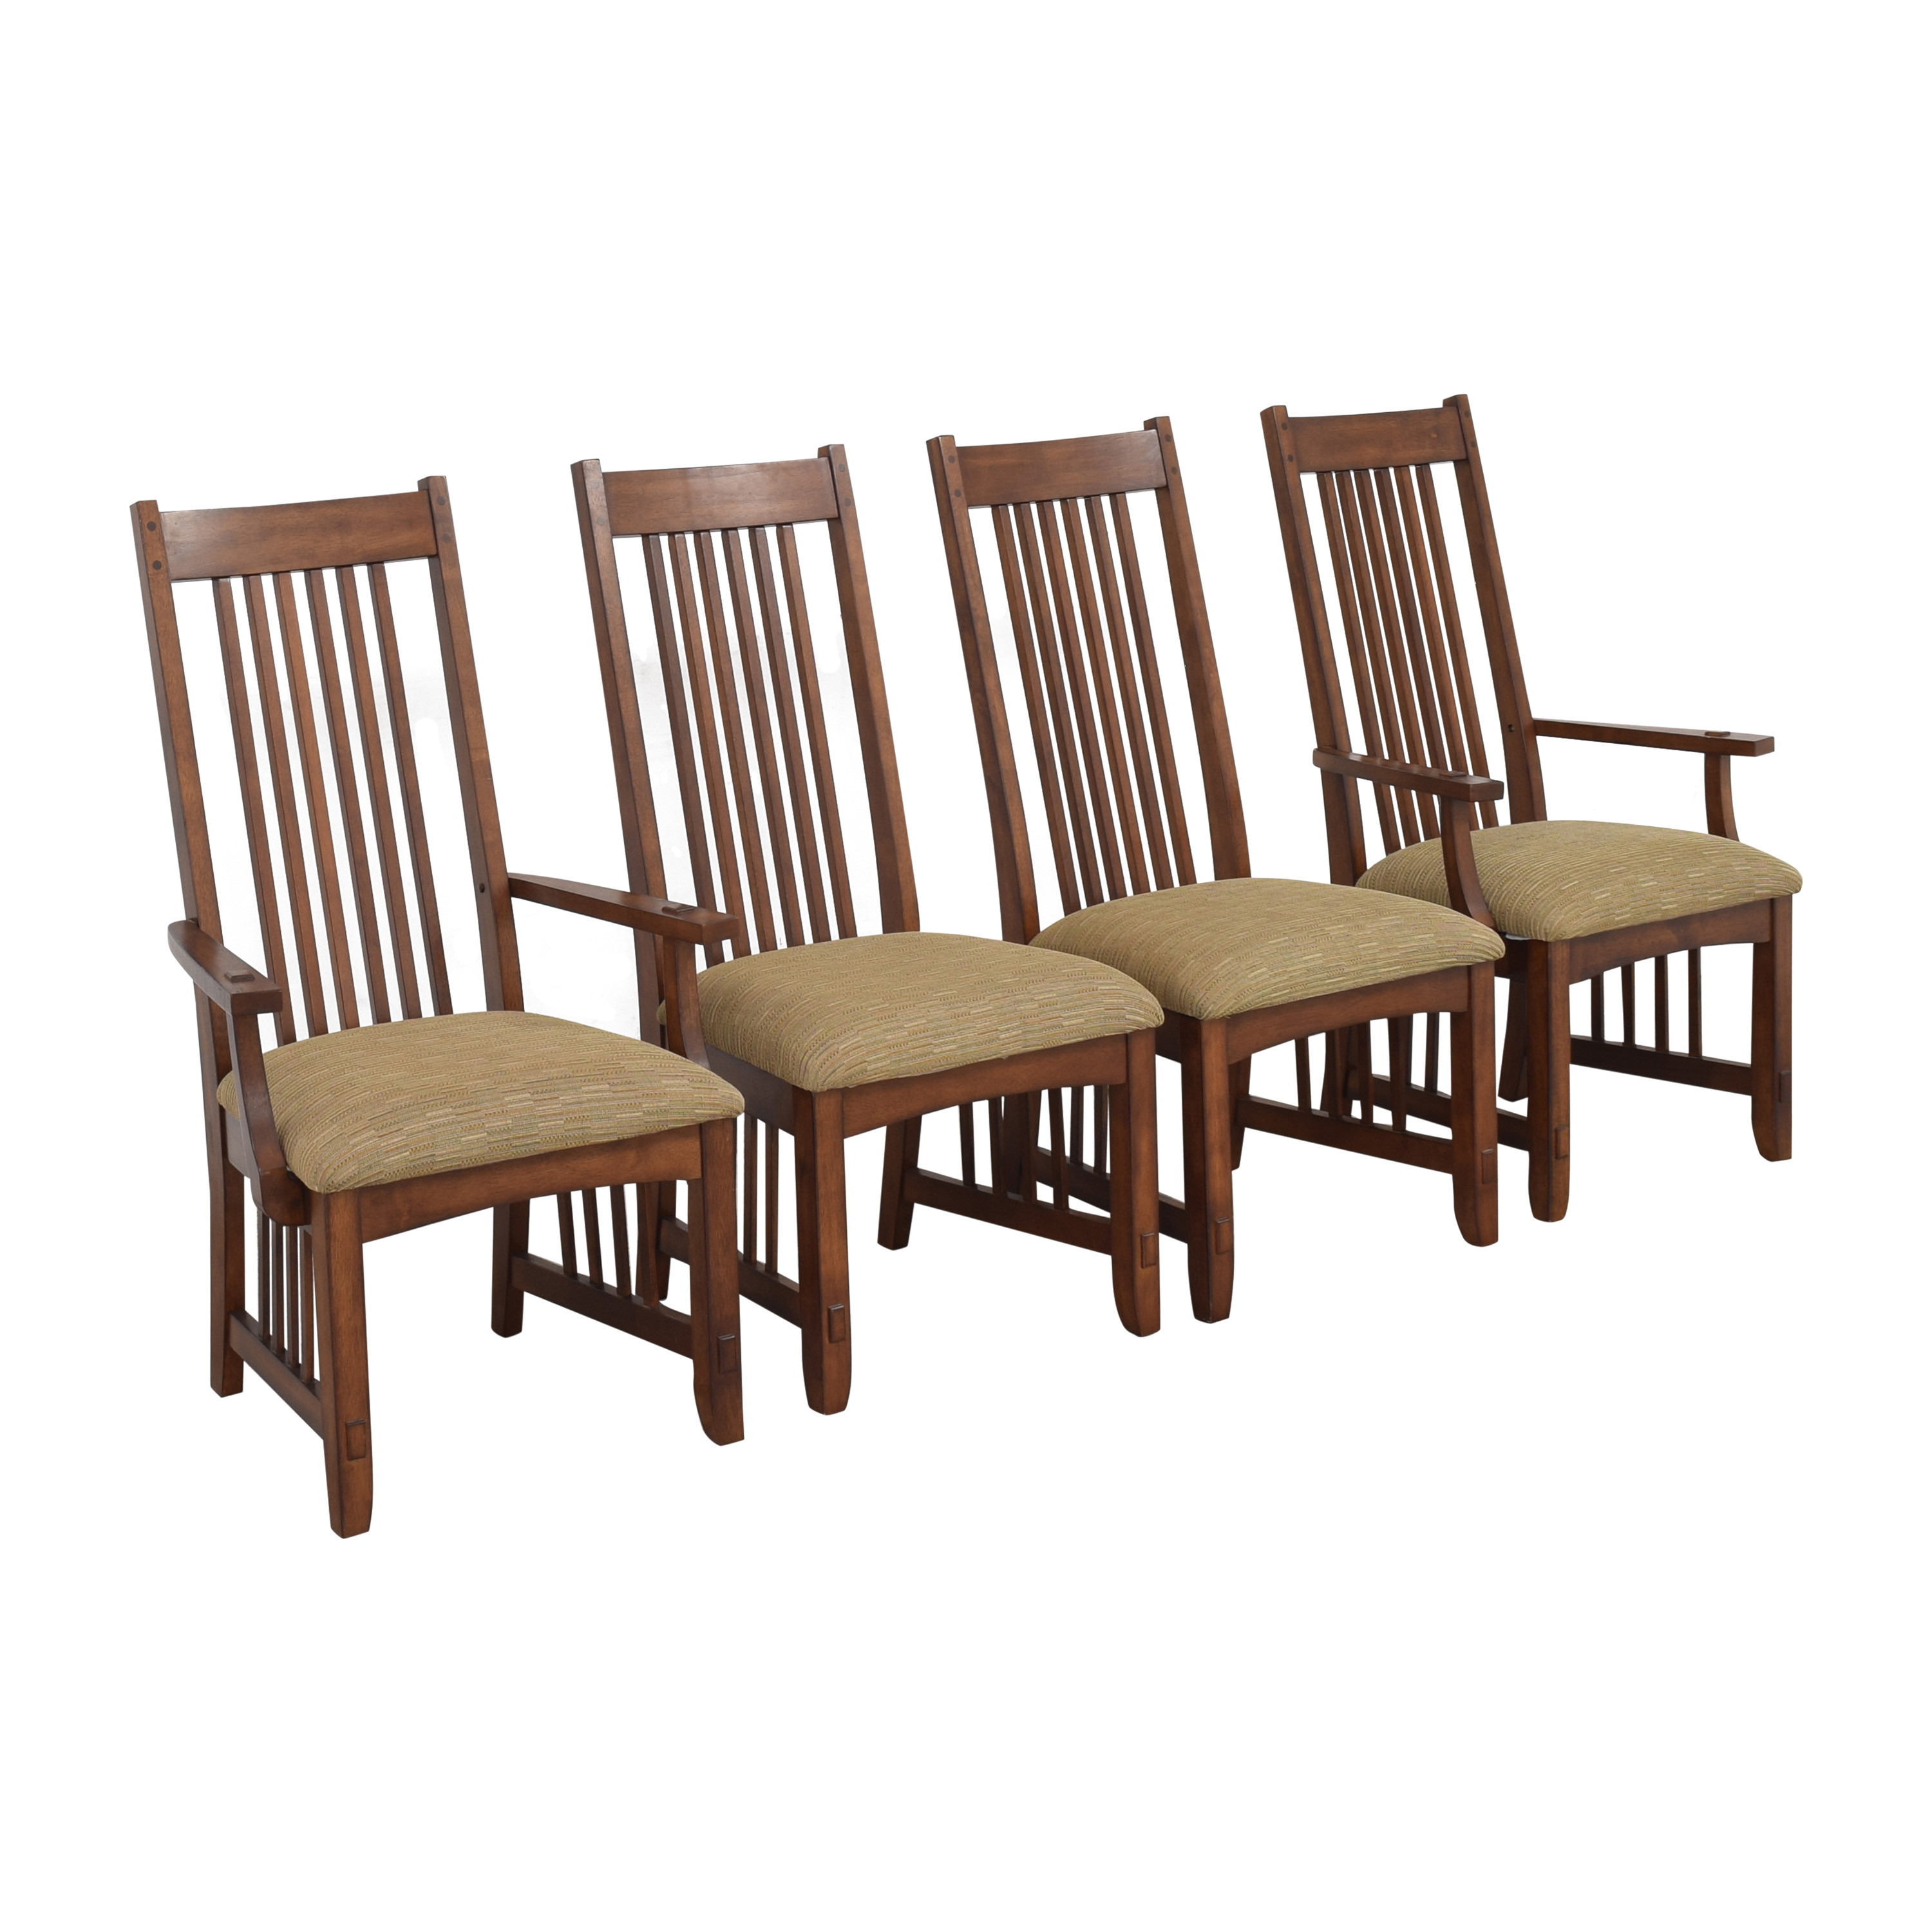 Green River Furniture Green River Mission Style Dining Chairs pa